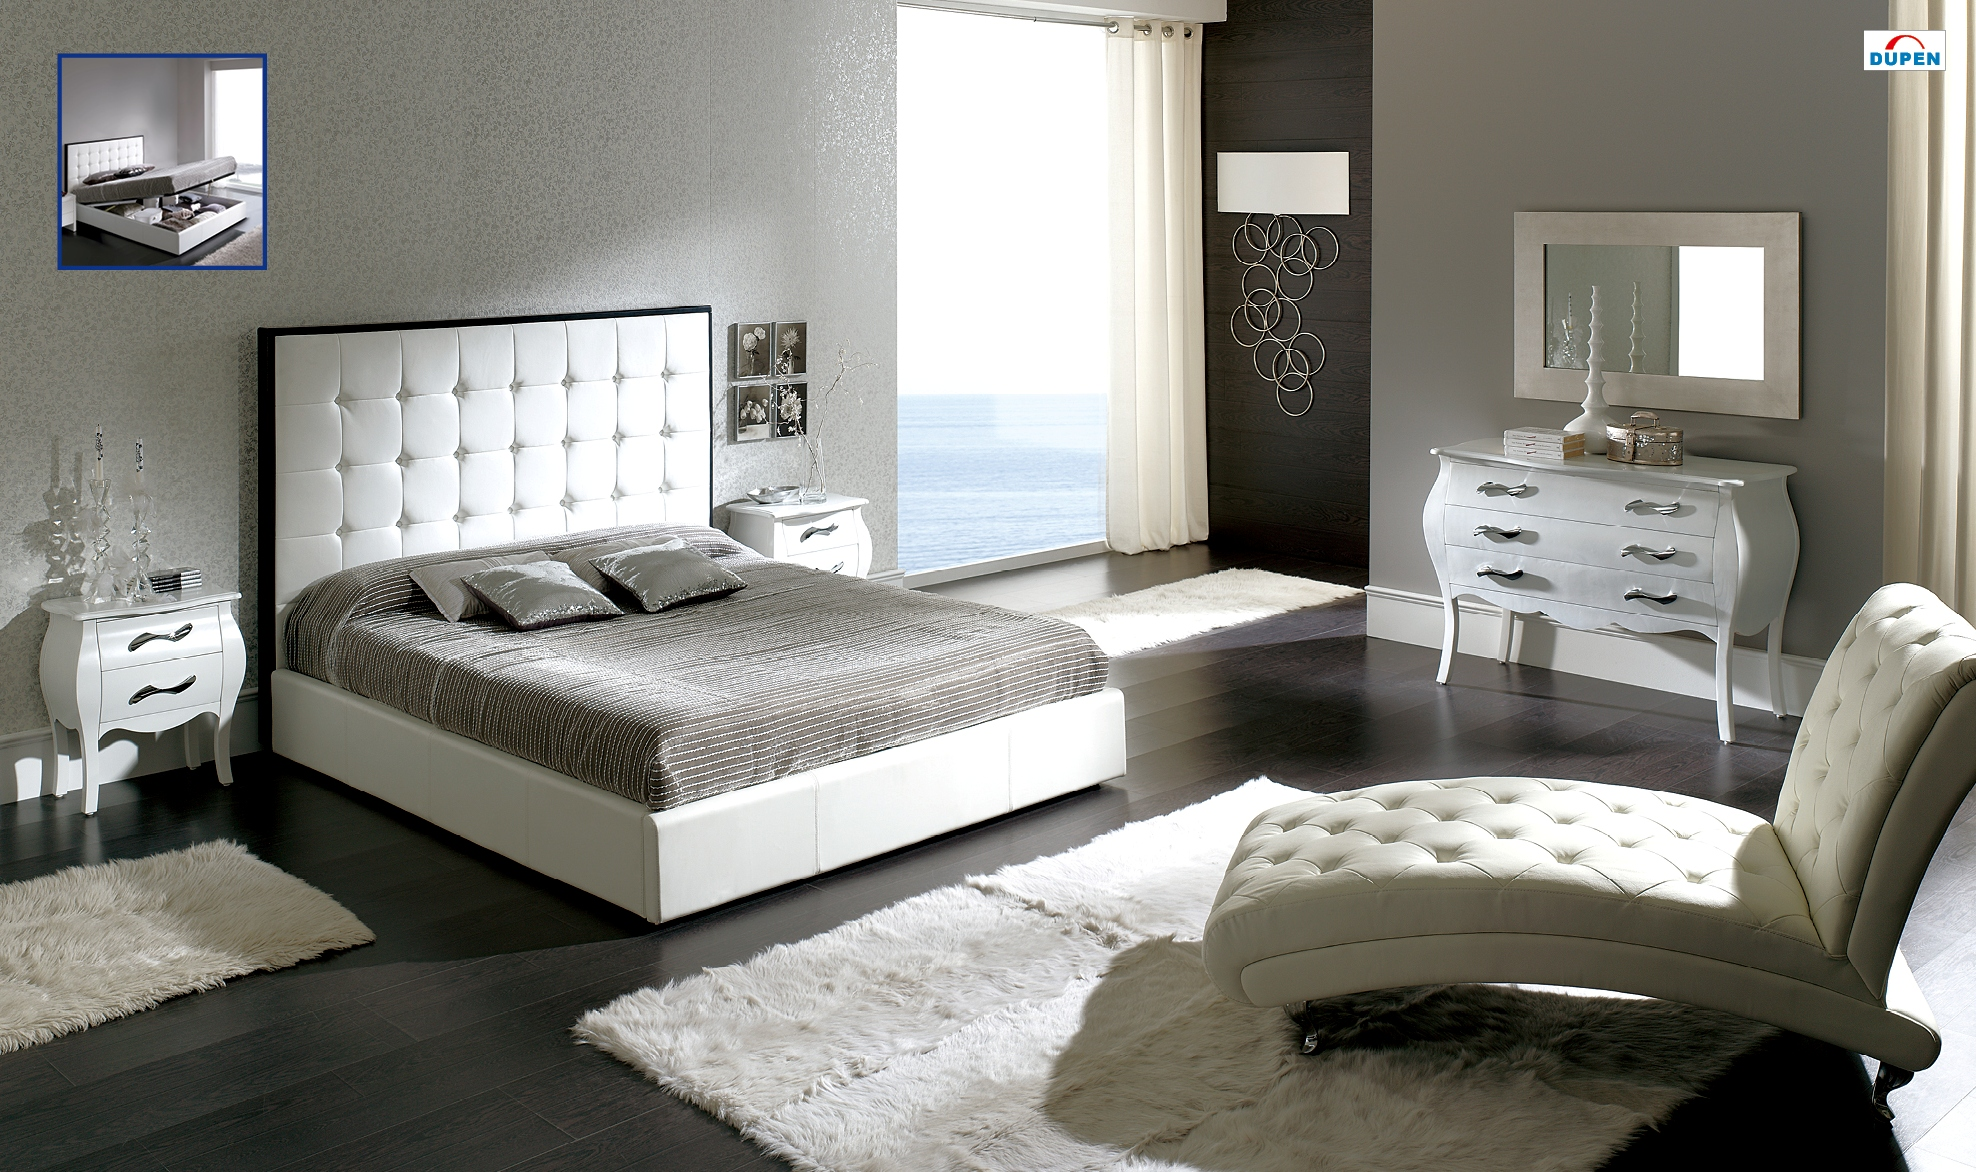 Adorable Bedroom Design With Uphostered Headboard And White Furry Area Rug  And Comfy Chair For Bedroom